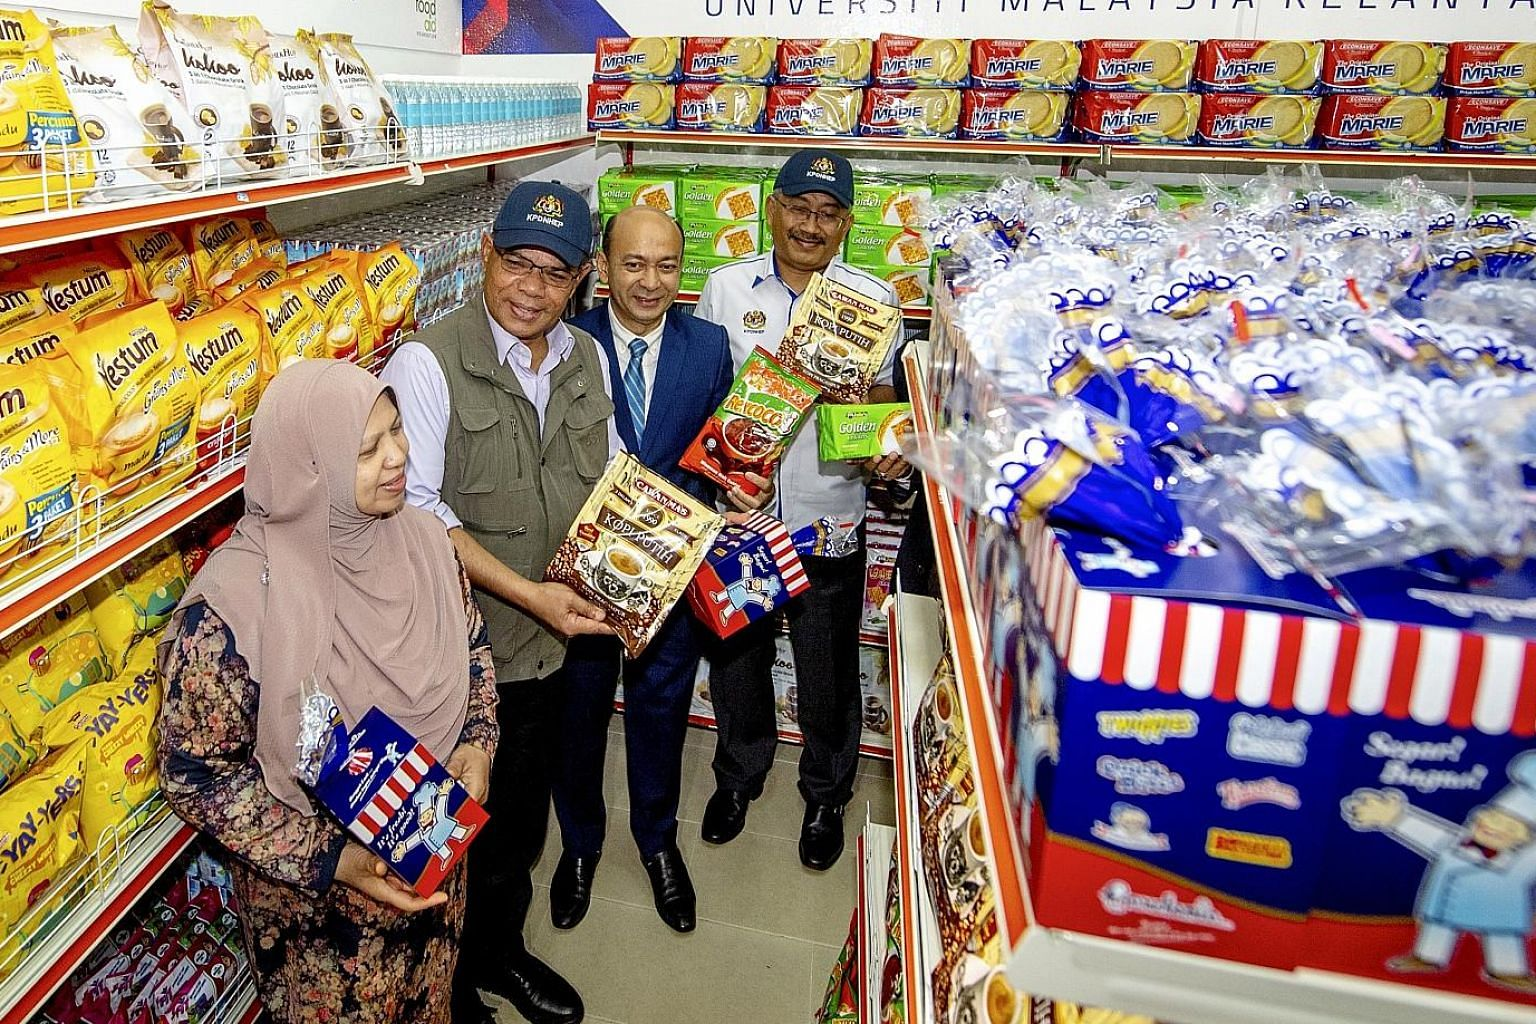 Domestic Trade and Consumer Affairs Minister Saifuddin Nasution Ismail (second from left) and his wife, Datin Seri Norhayati Musa, visiting the Universiti Malaysia Kelantan food bank last November. With them was deputy vice chancellor for student aff